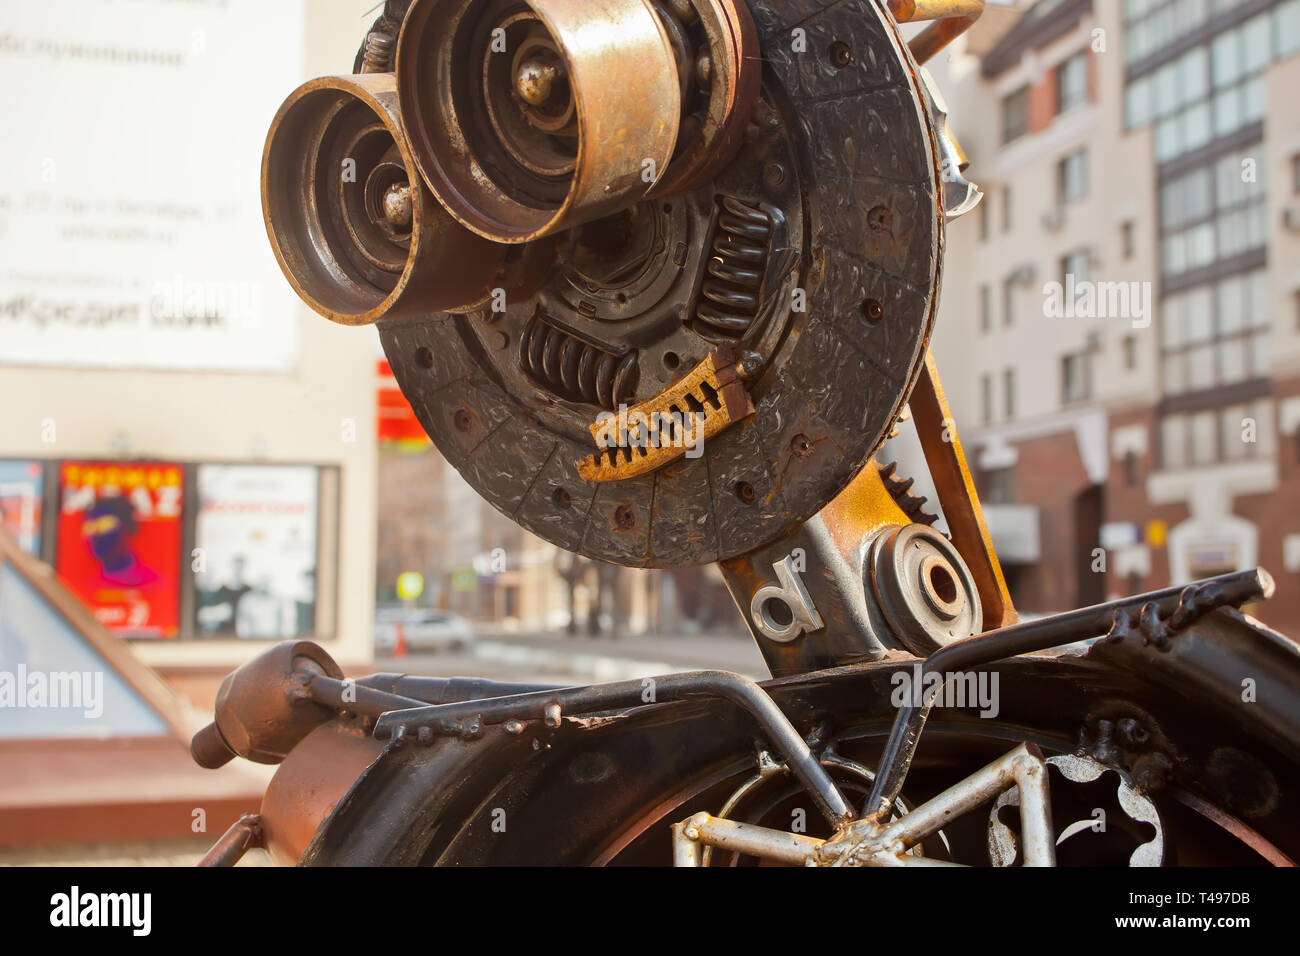 Metal sculpture of trash compactor robot made of rusty details of old cars. Close up head of robot. Selective focus Stock Photo